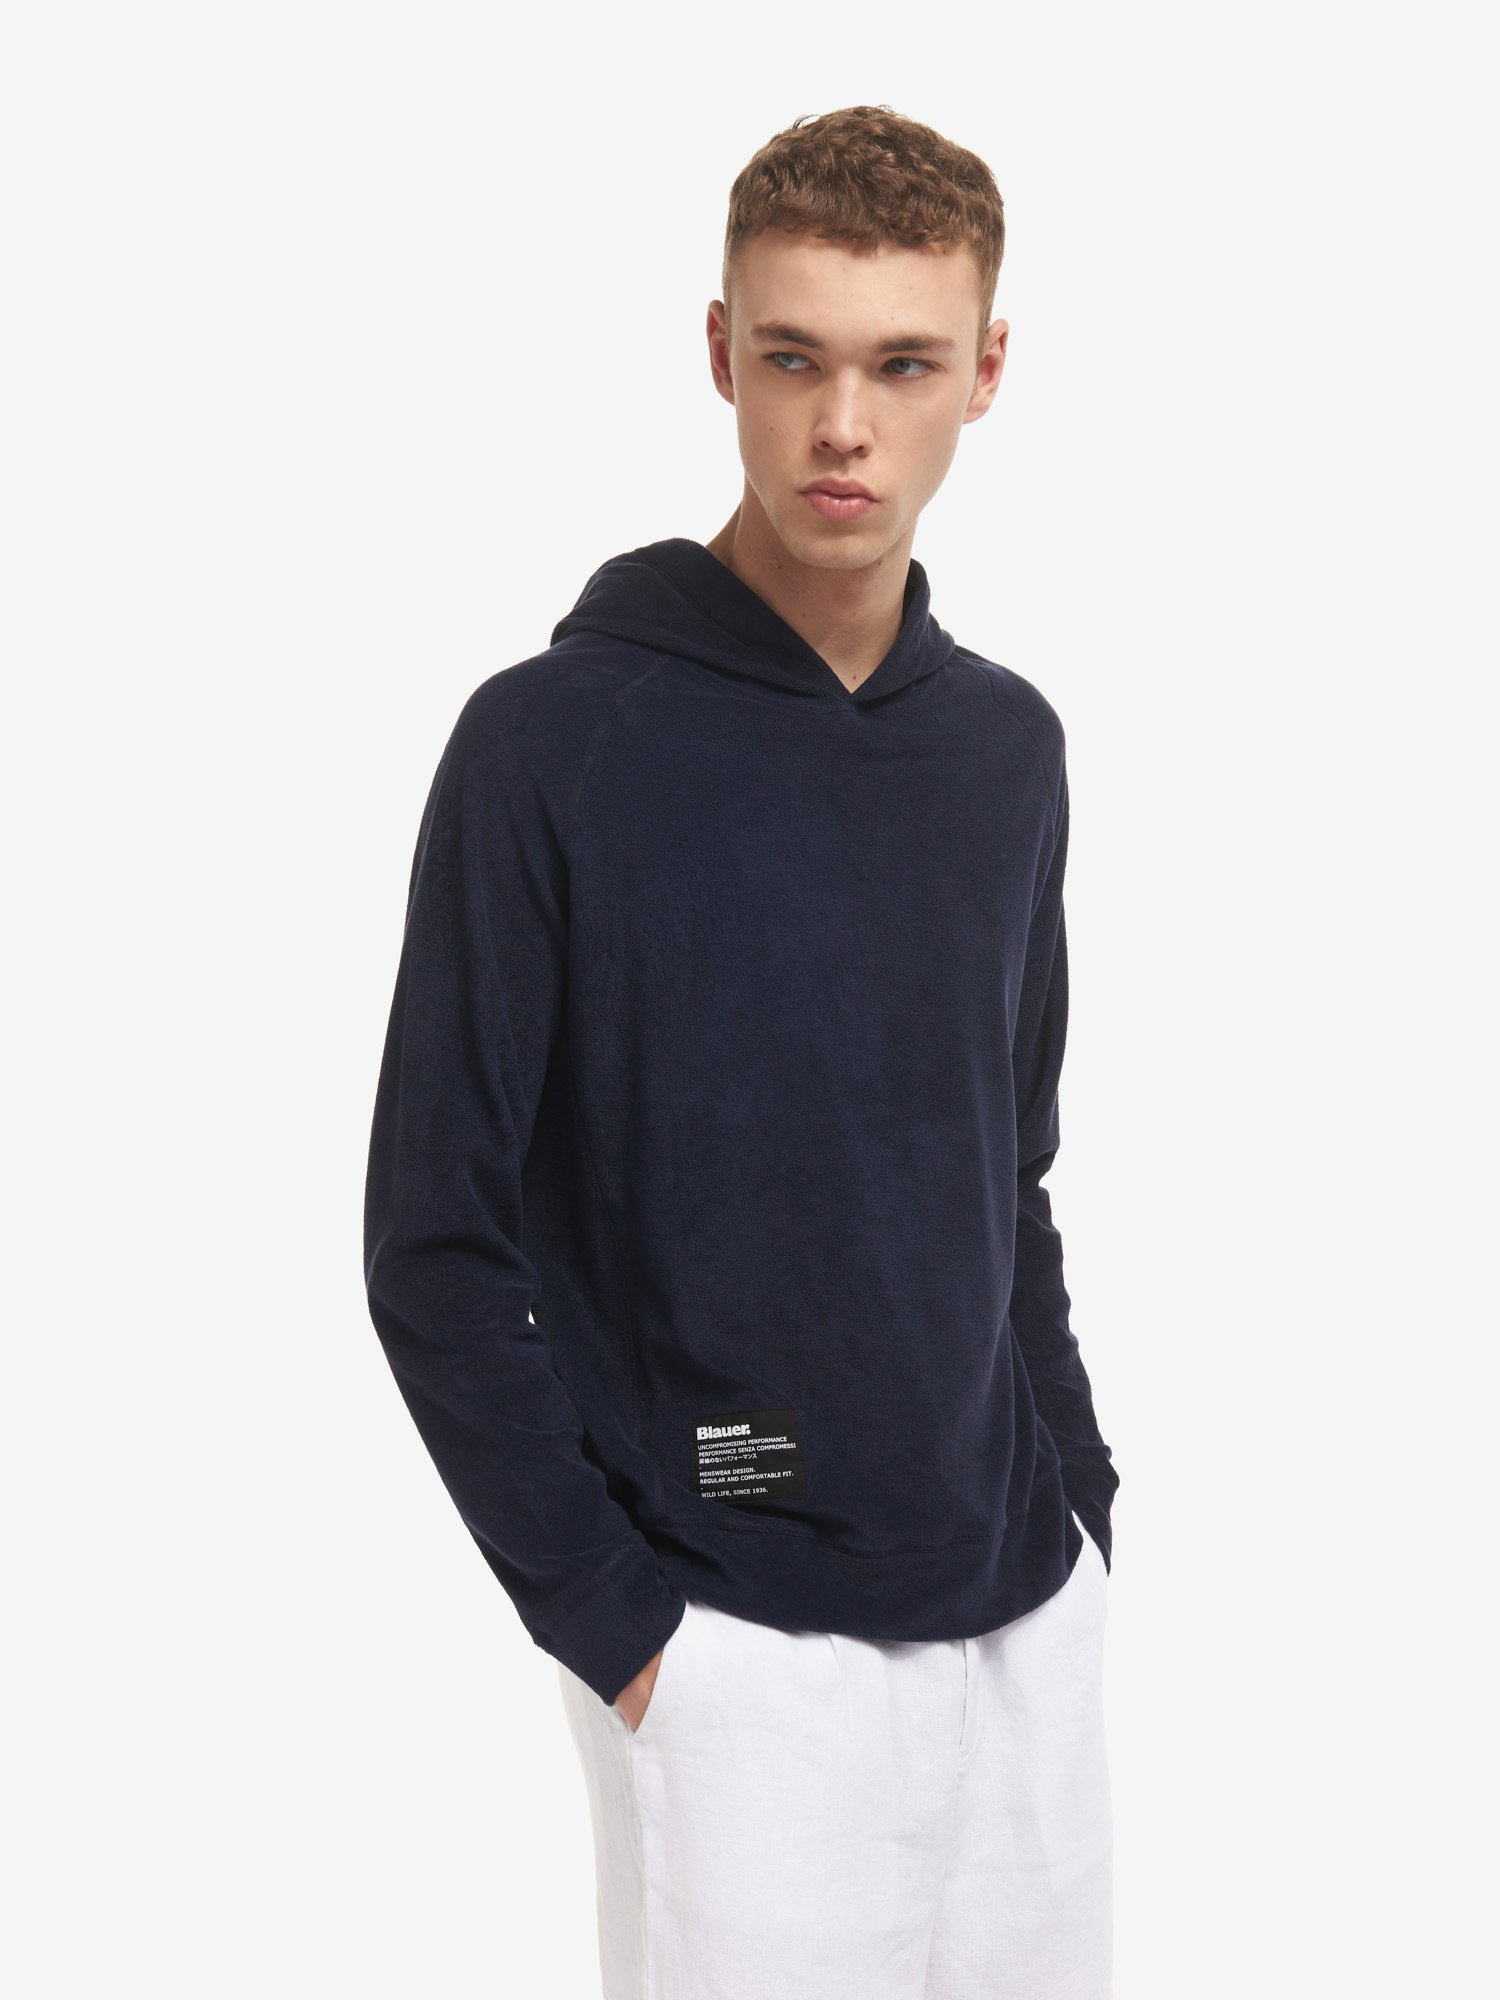 HOODED SWEATSHIRT IN COTTON TERRY - Blauer